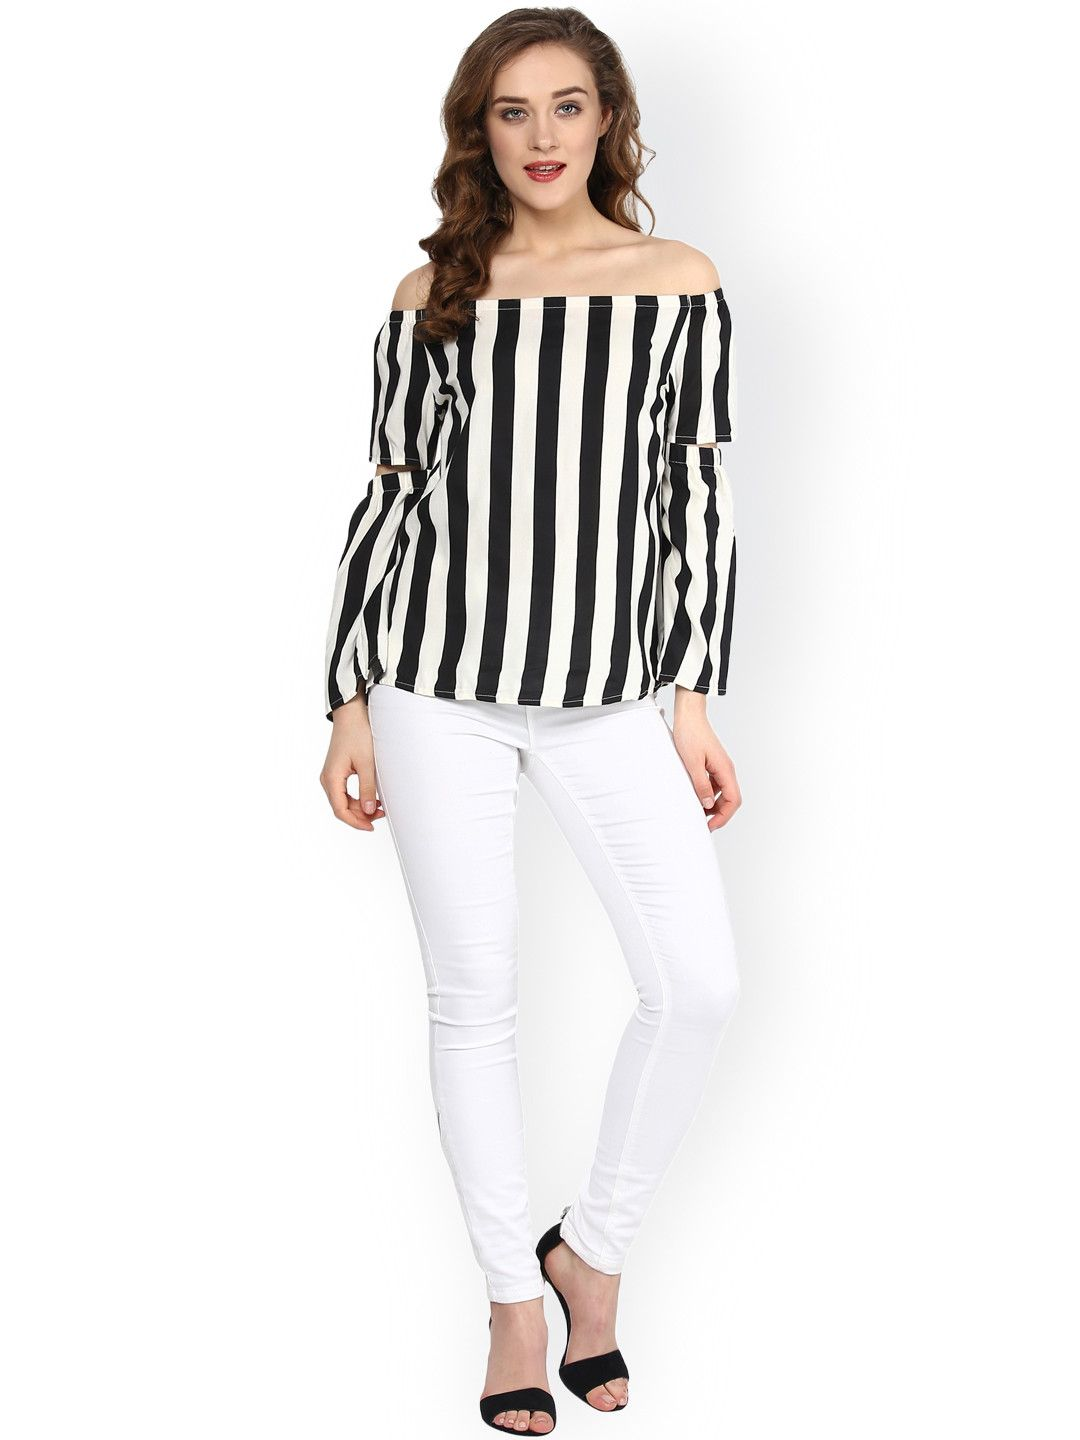 90bbbf388d4acd SASSAFRAS Black & White Striped Off-Shoulder Top | Girlee Top ...